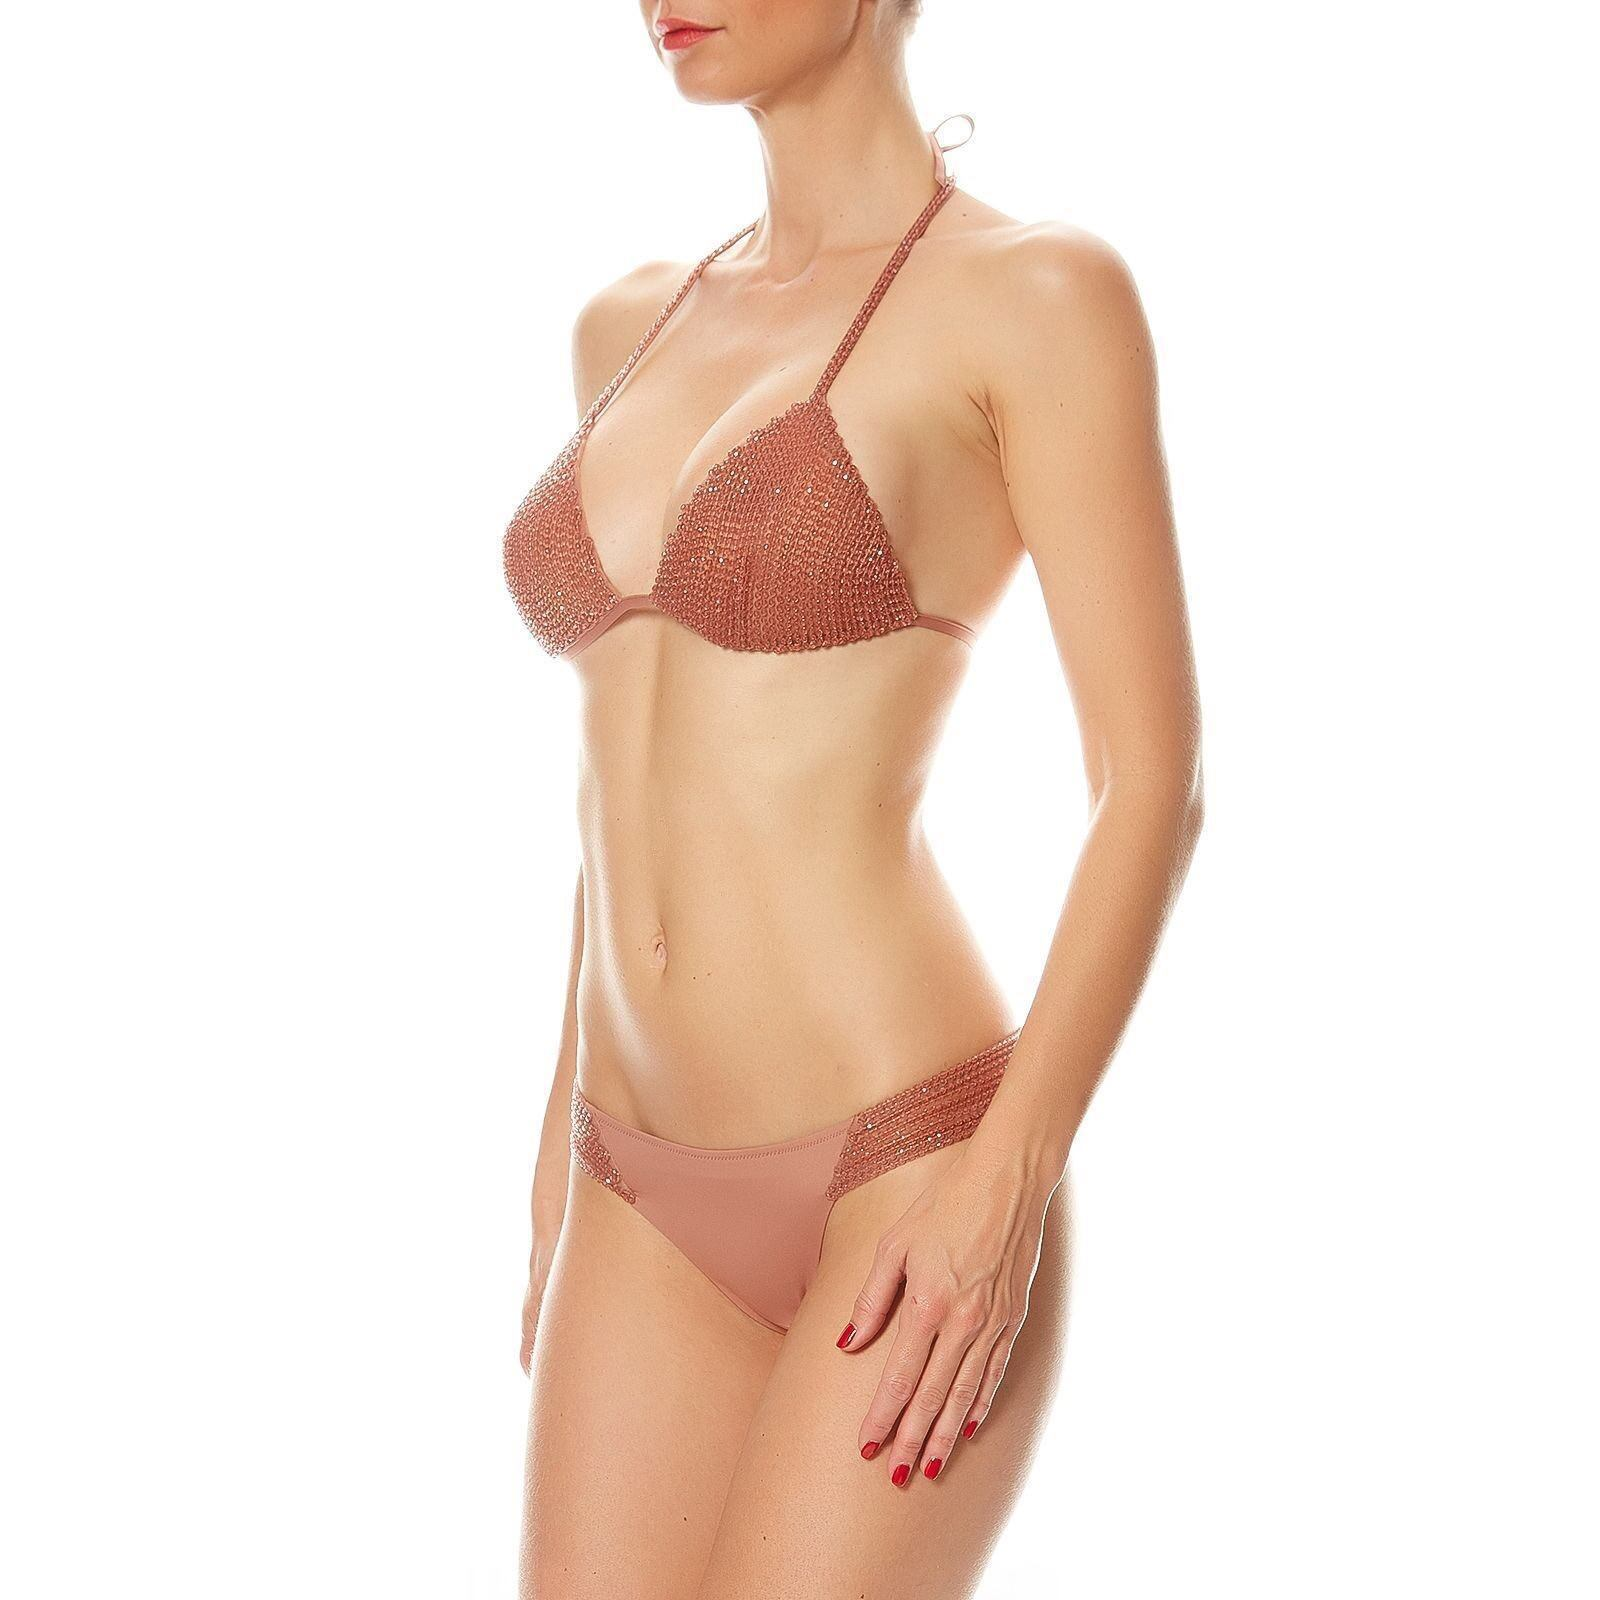 La Perla Glimmering Beach Beige Beaded Bikini Bra & Brief Set - Size IT 46